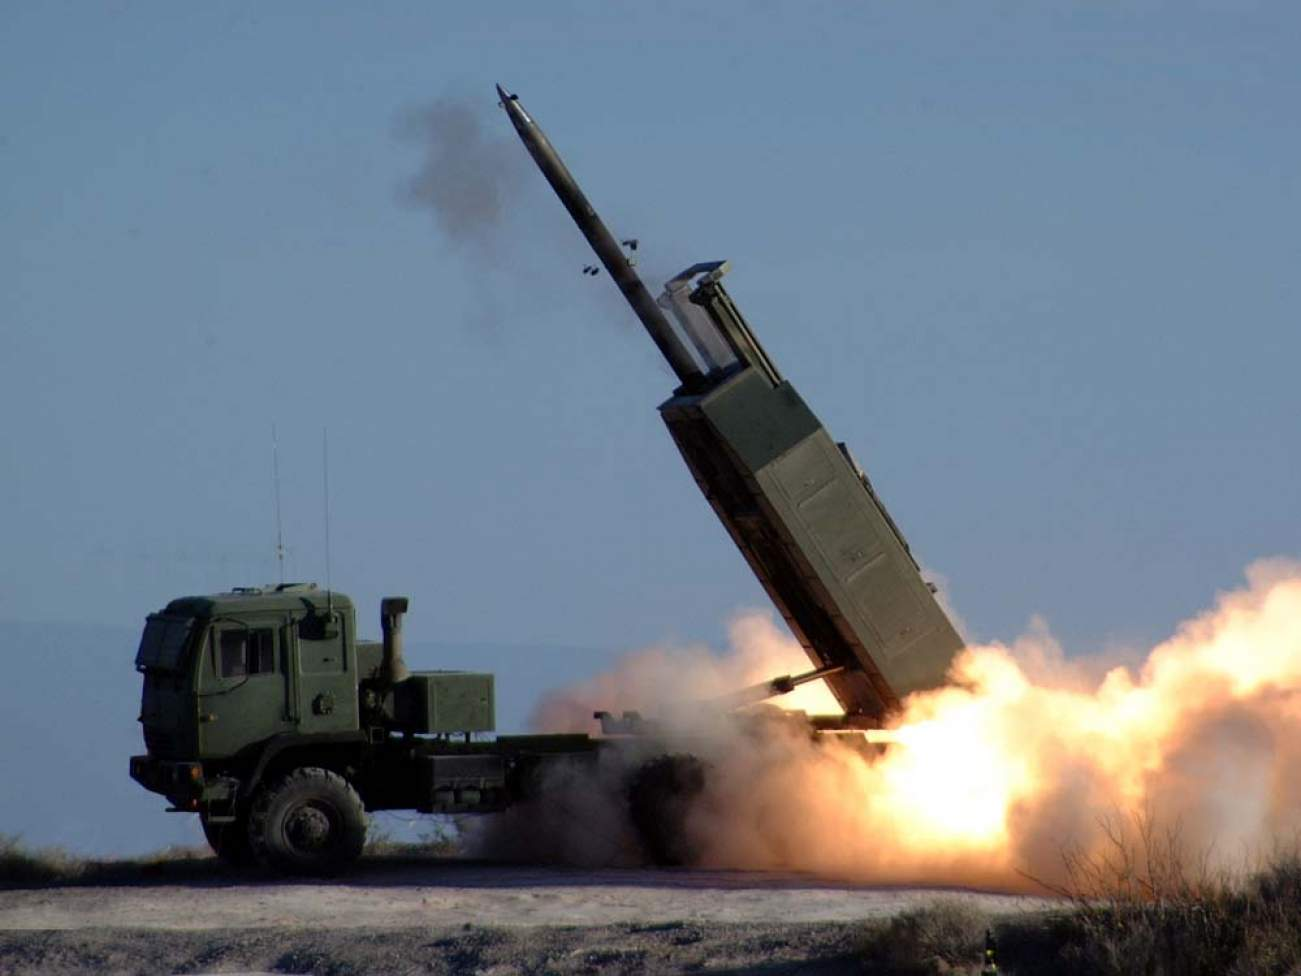 The Marine Corps Has A Strategy To Beat China: Island-Based Anti-Ship Missiles